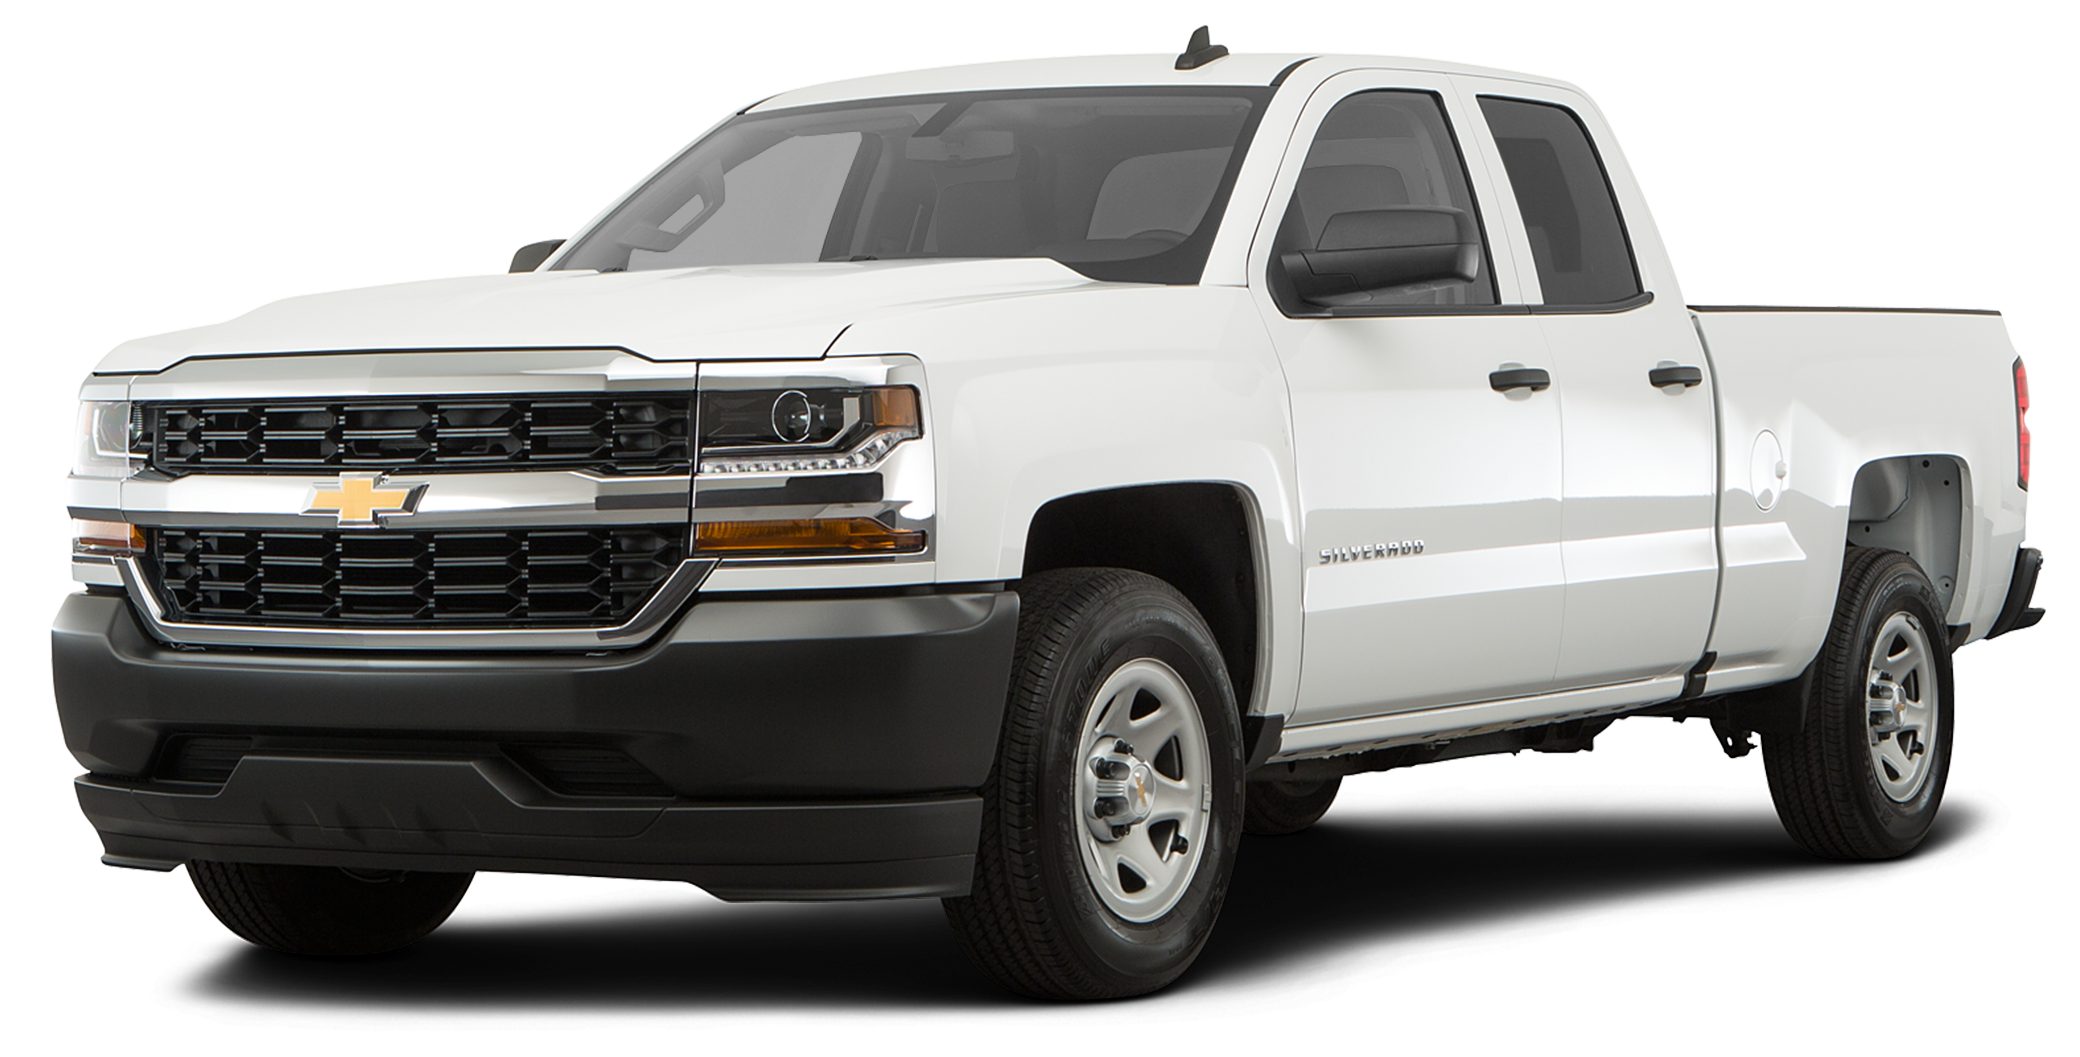 Chevy Dealer Springfield Mo >> 2019 Chevrolet Silverado 1500 Incentives, Specials & Offers in Springfield MO